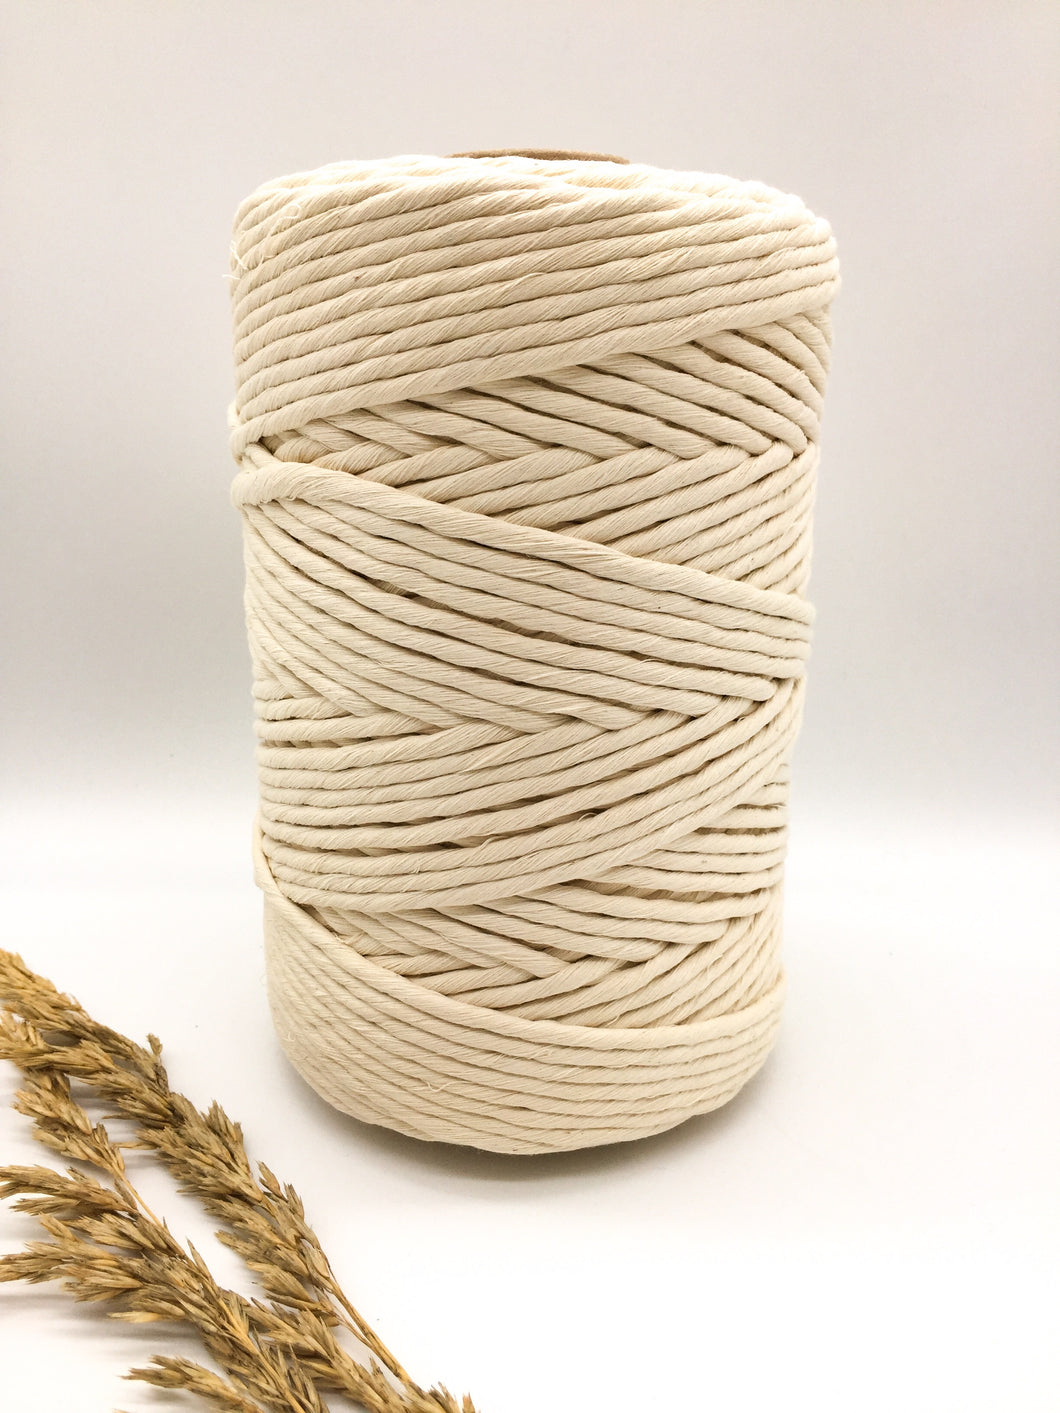 5mm NATURAL single twist cotton string